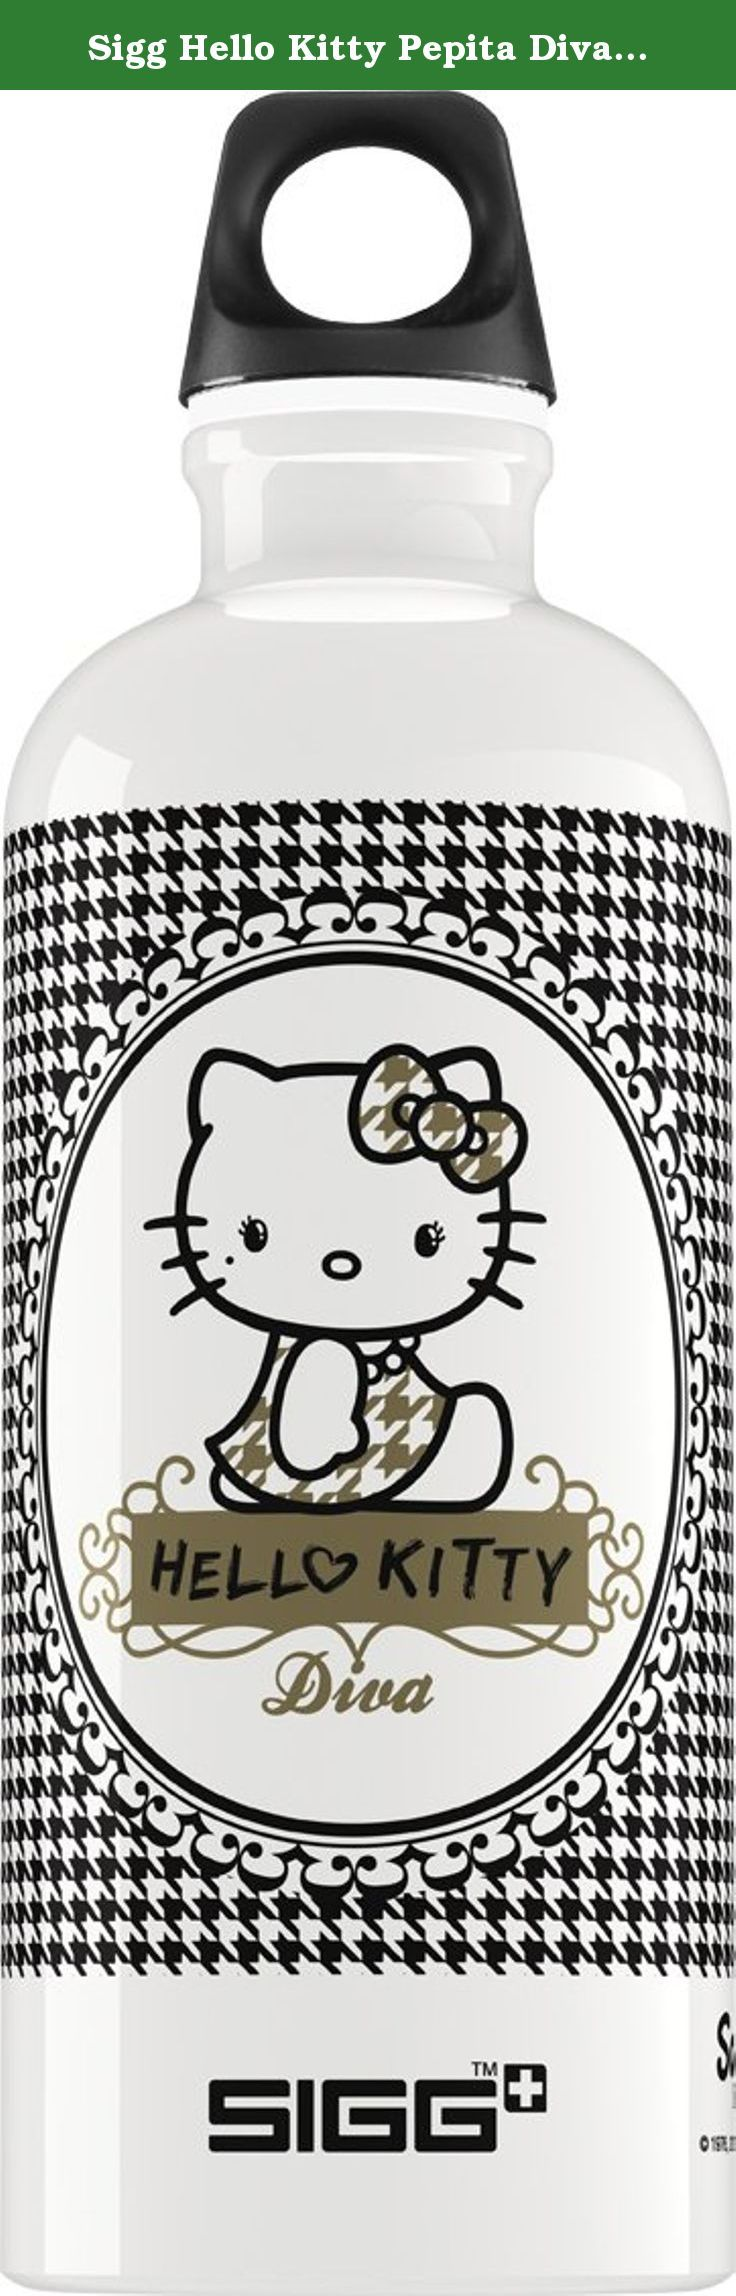 Sigg Hello Kitty Pepita Diva Water Bottle, 0.6-Liter, White/Black. SIGG bottles have become a conveted style icon due to the century of Swiss quality, expertise and experience. SIGG bottles are durable and functional. SIGG combines our deeply rooted history with a forward - looking mindset, bringing our established technical know - how in line with our passion for innovation.